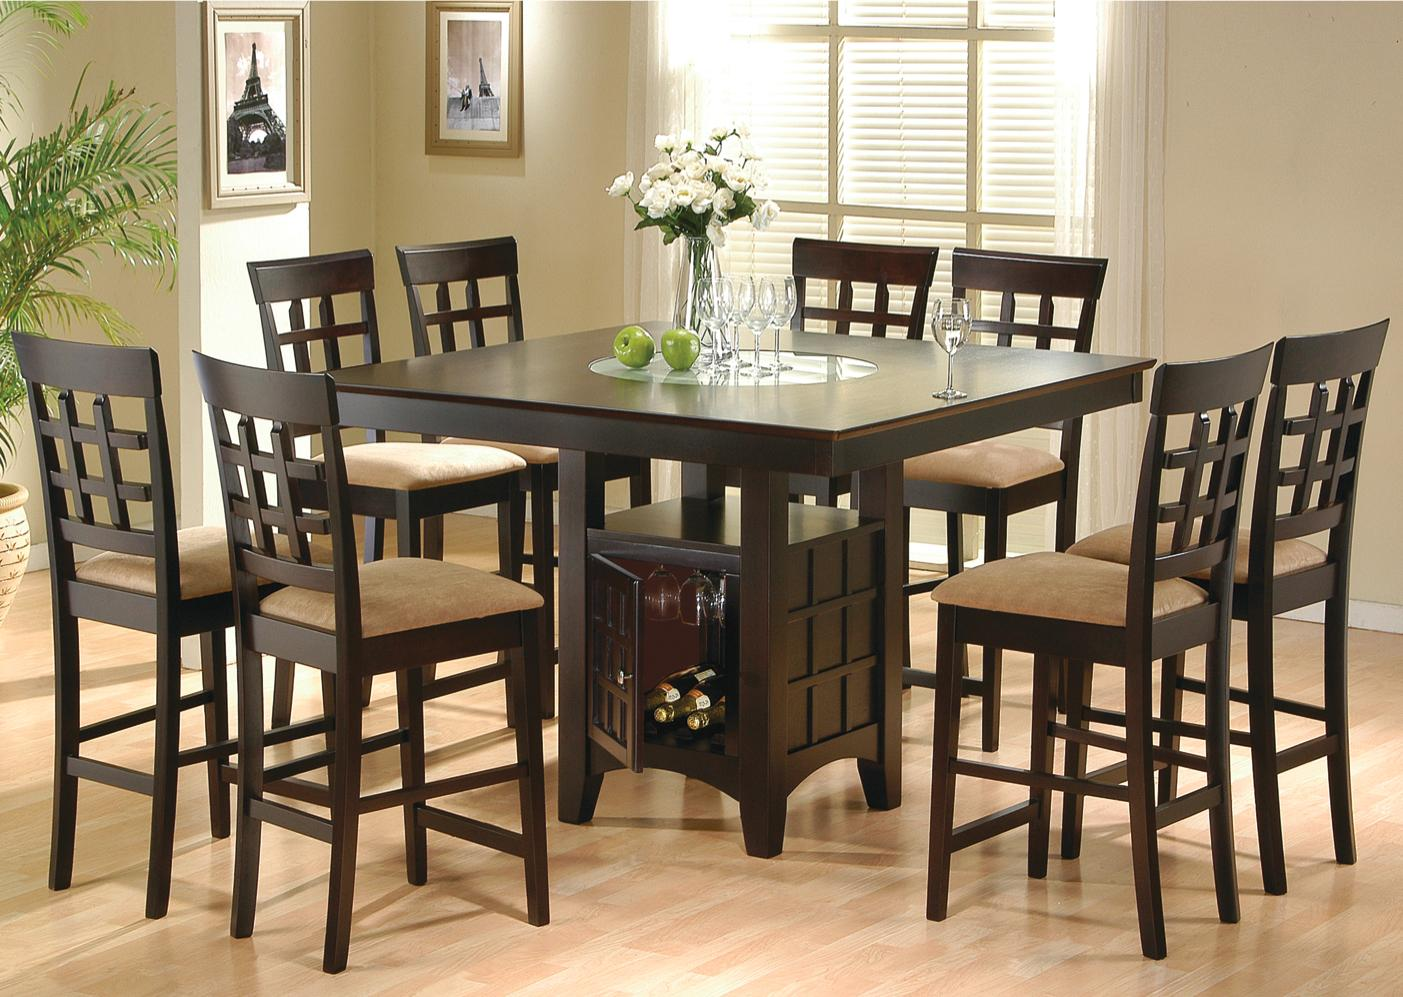 Coaster Mix U0026 Match Counter Height Dining Table With Storage Pedestal Base    Coaster Fine Furniture